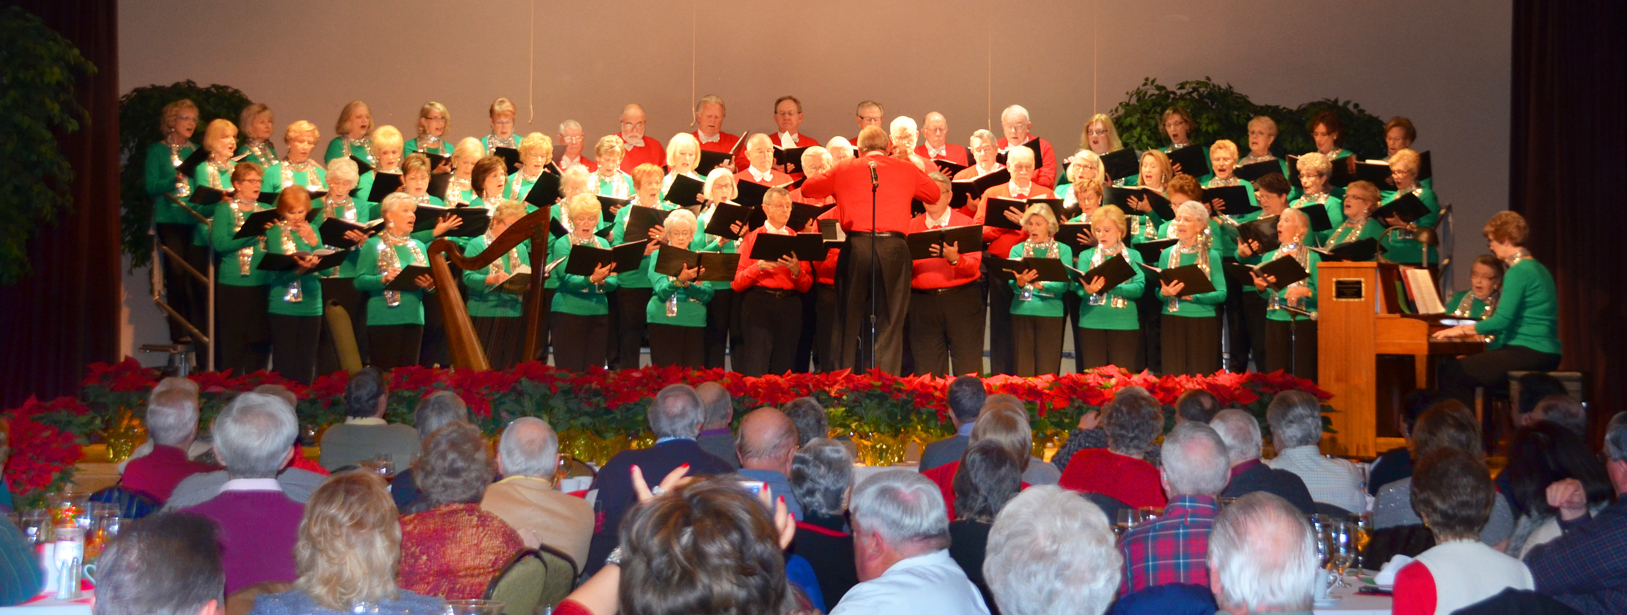 Heritage Ranch Chorale Entertaining HR Friends and Neighbors.JPG